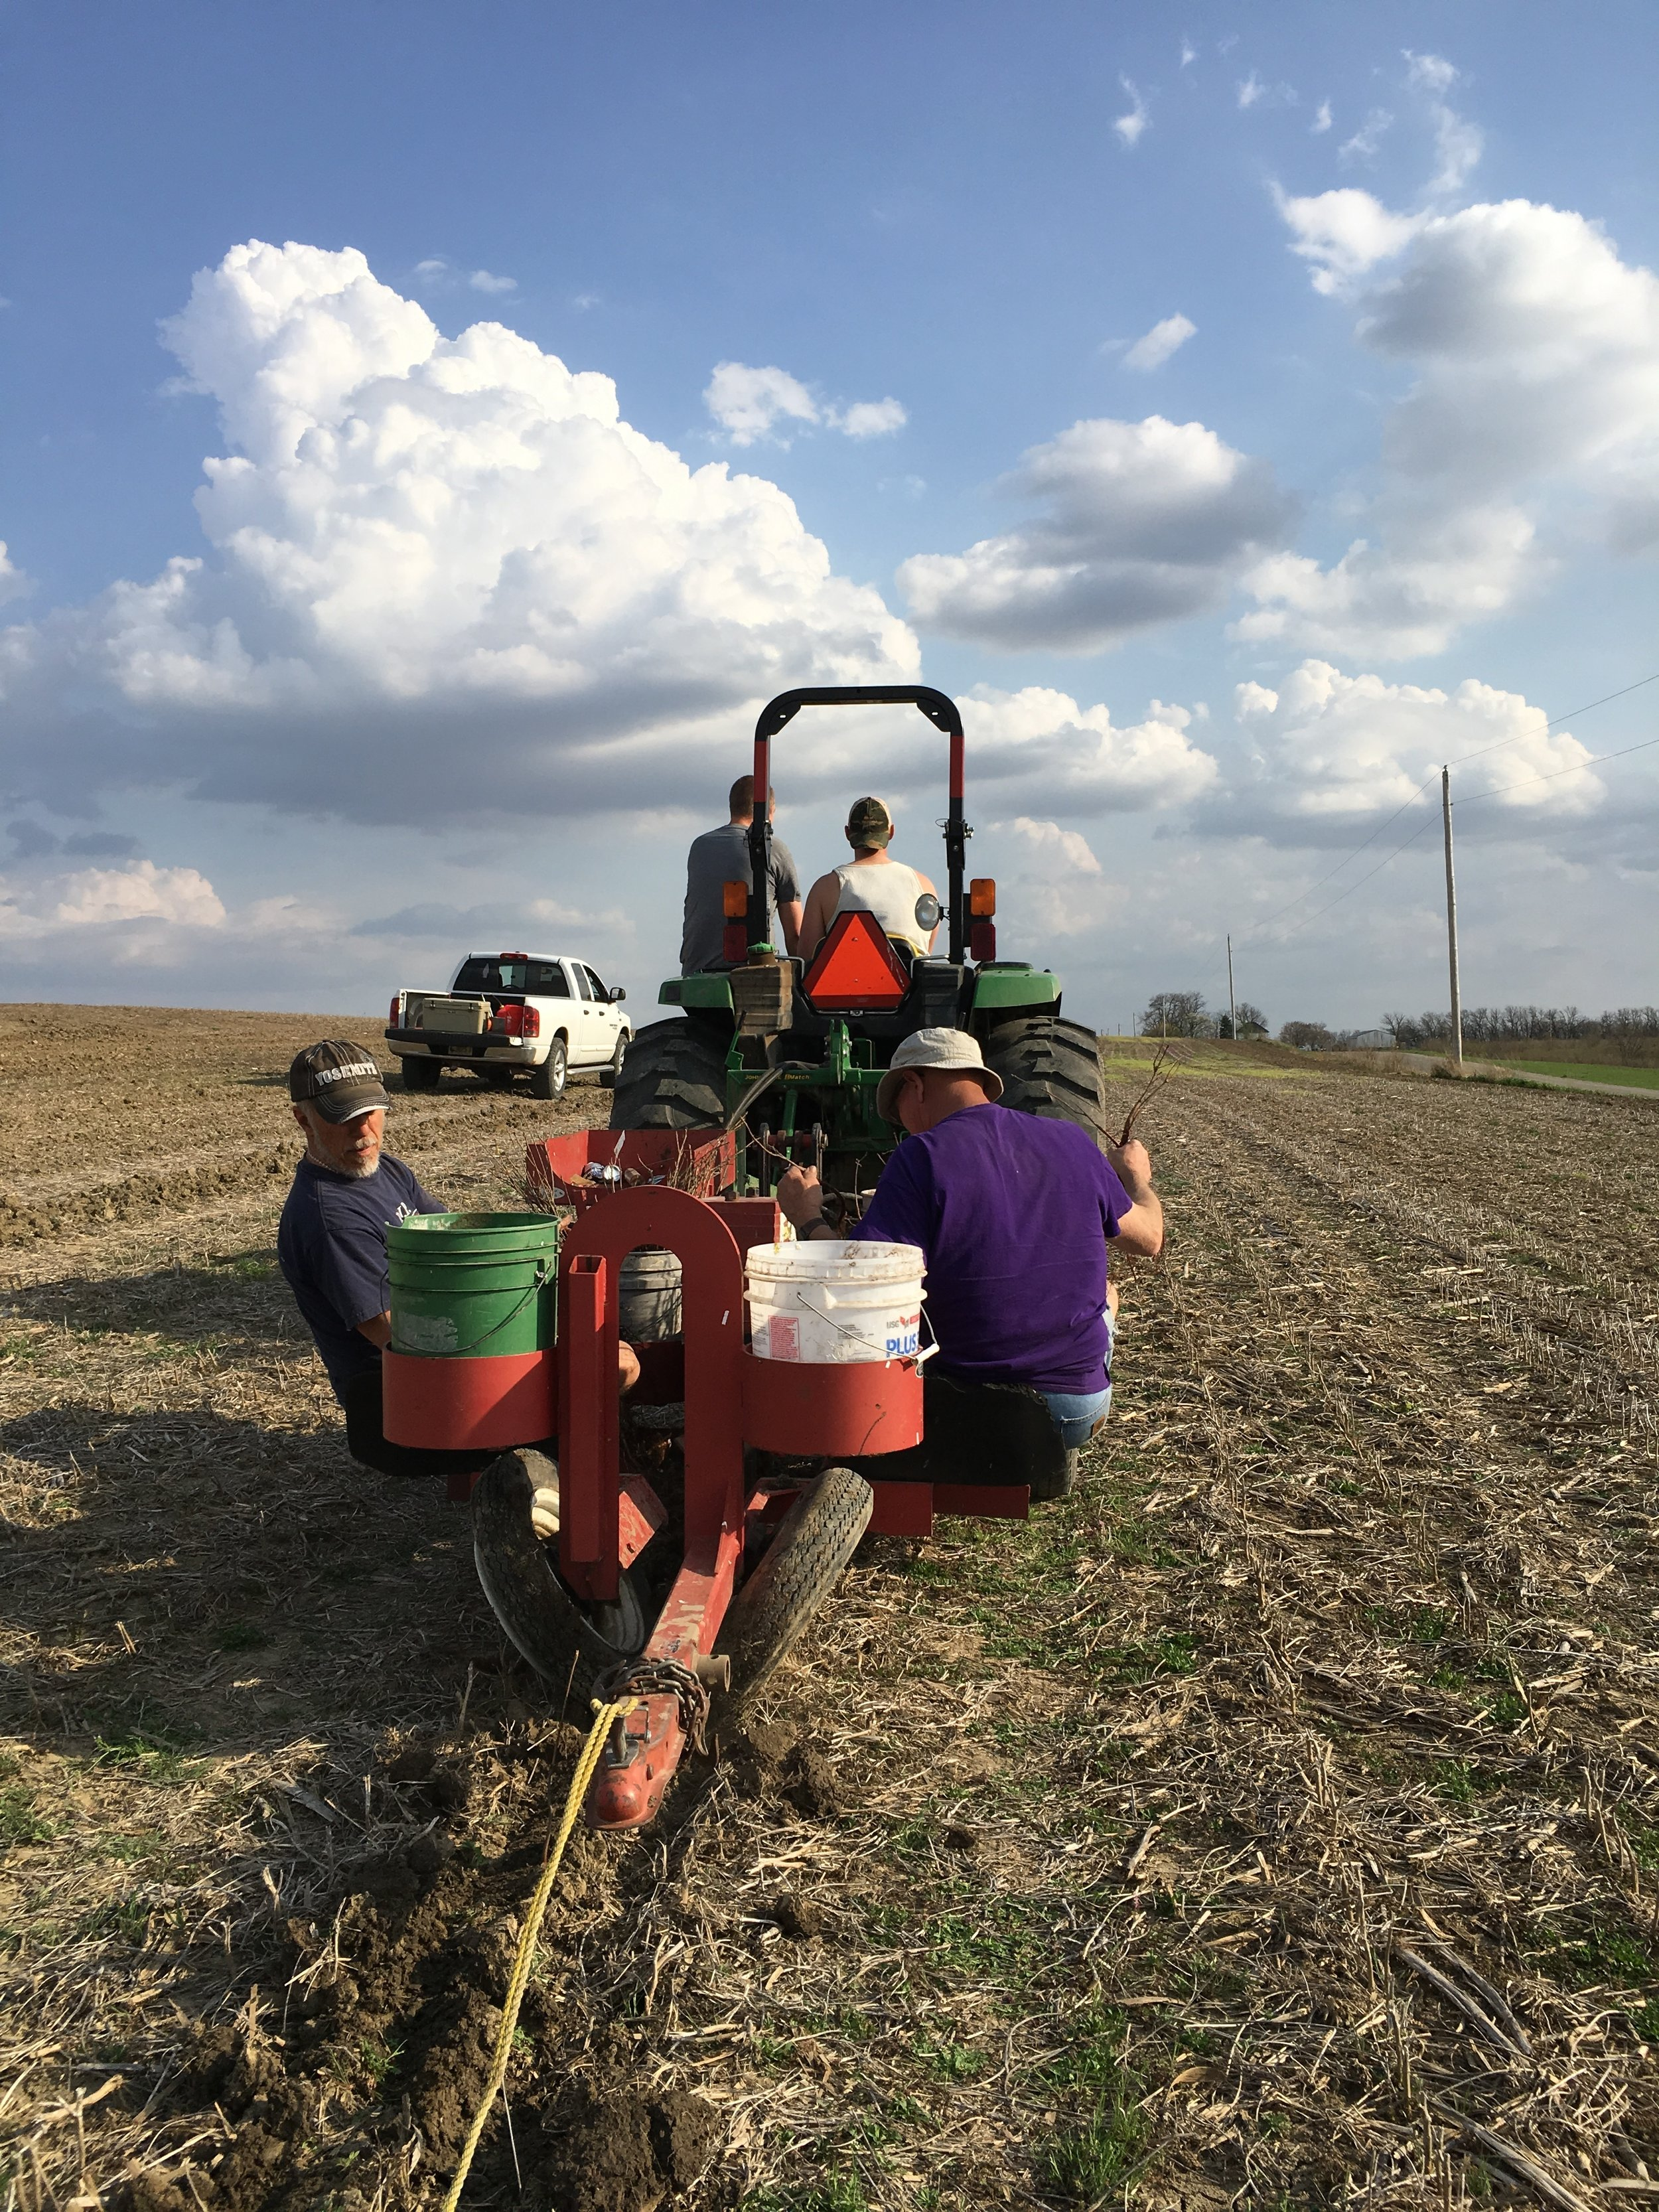 The Pheasants Forever tree planter came in handy for getting the 1,400 trees and shrubs into the ground. This implement made short work of our windbreak establishment.